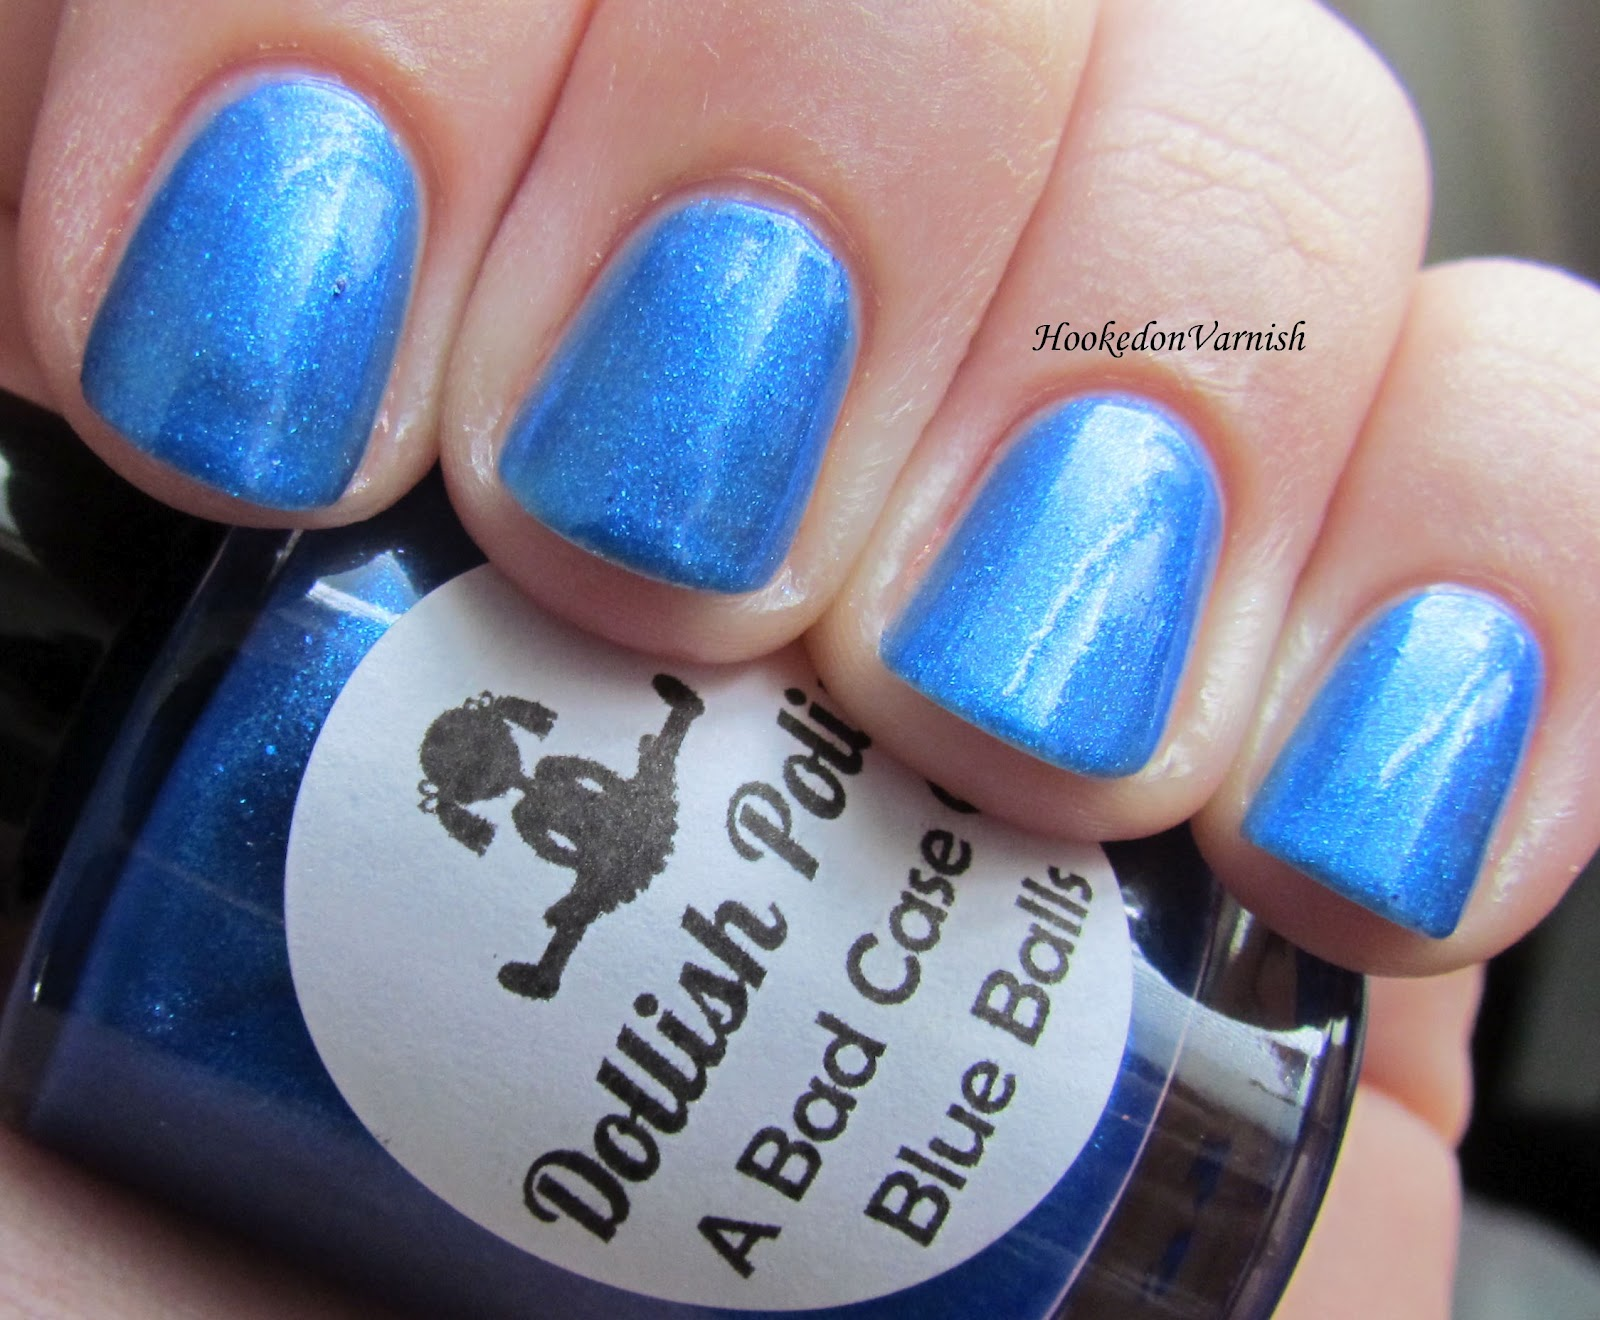 This One Is A Nice Royal Blue With Glass Fleck I Love This One As I Do Most If Not All Blues This Is 3 Coats It Was Slightly More Sheer